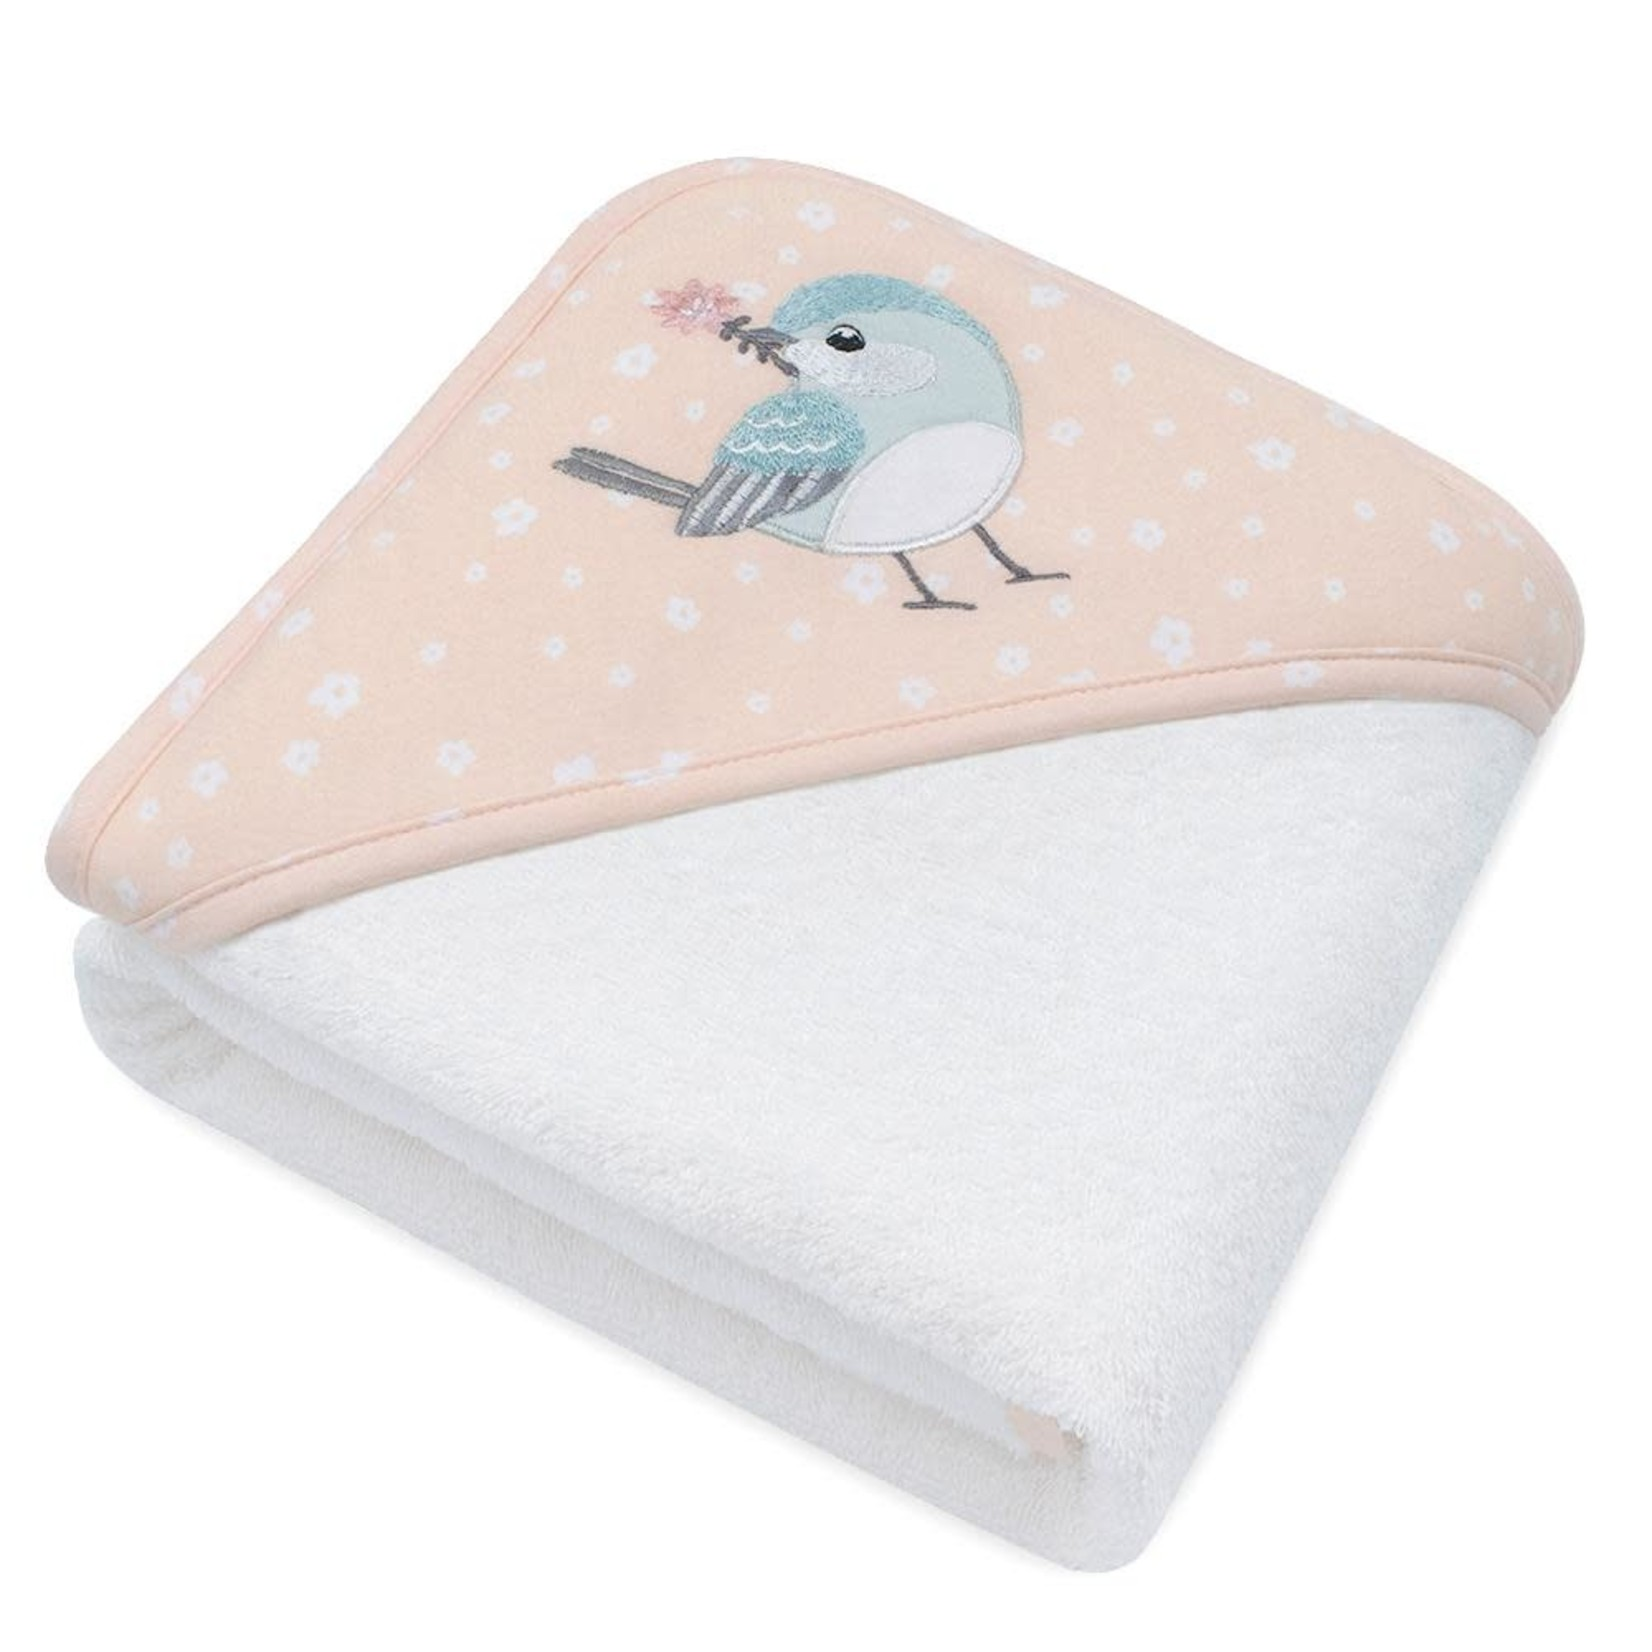 Lively Living Living Textiles Hooded Towel - Ava Birds